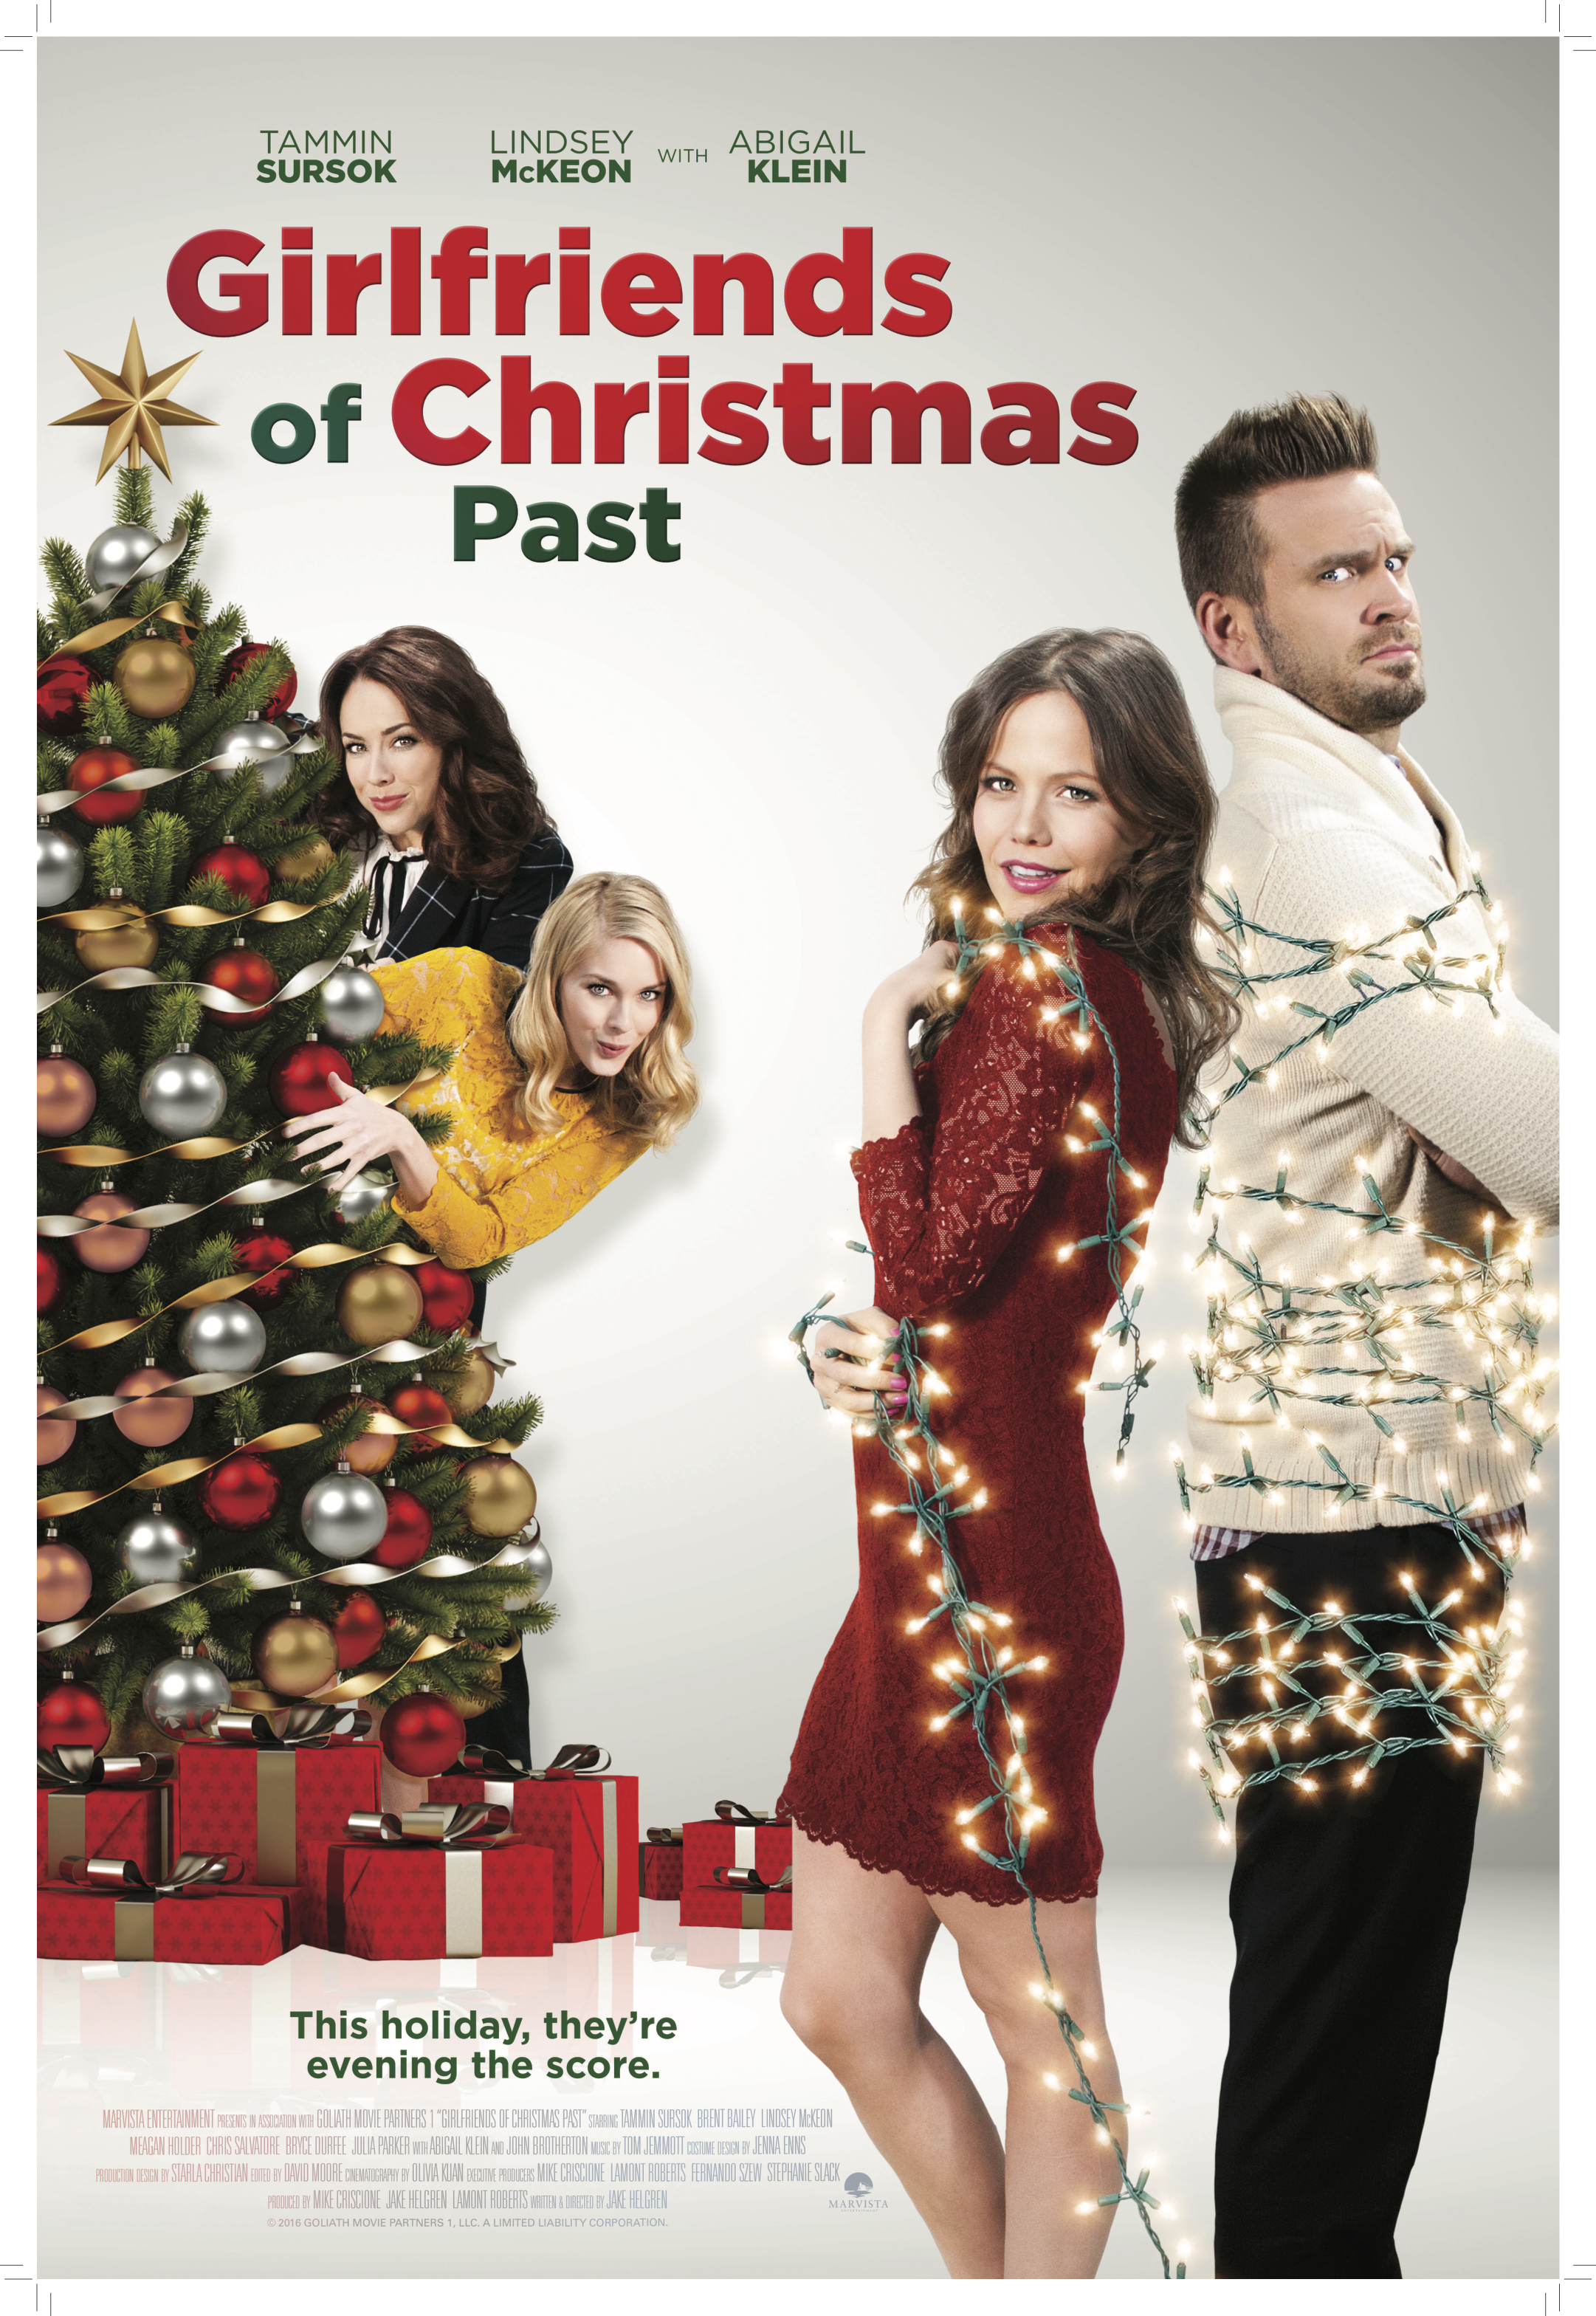 Girlfriends of Christmas Past (TV Movie 2016) - IMDb